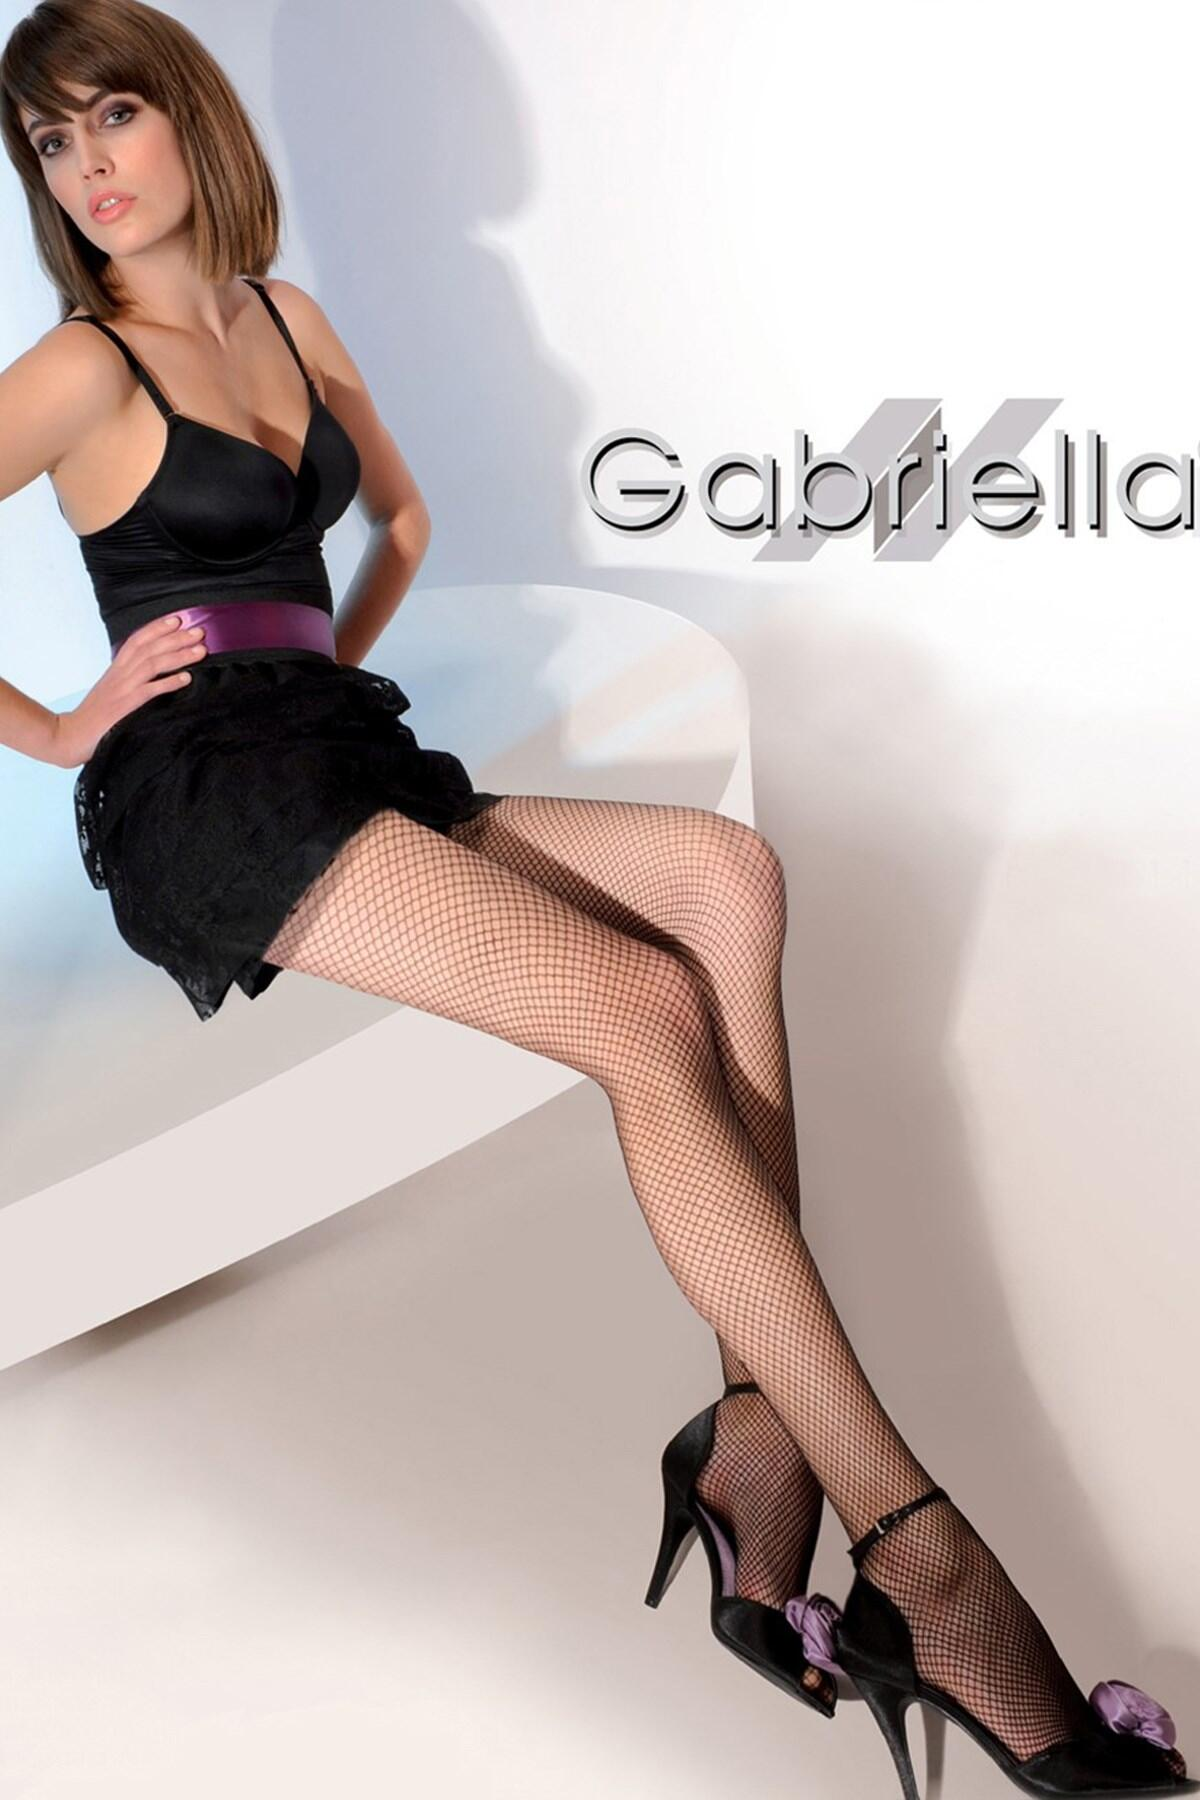 Gabriella Model 151 Fishnet Tights - Black